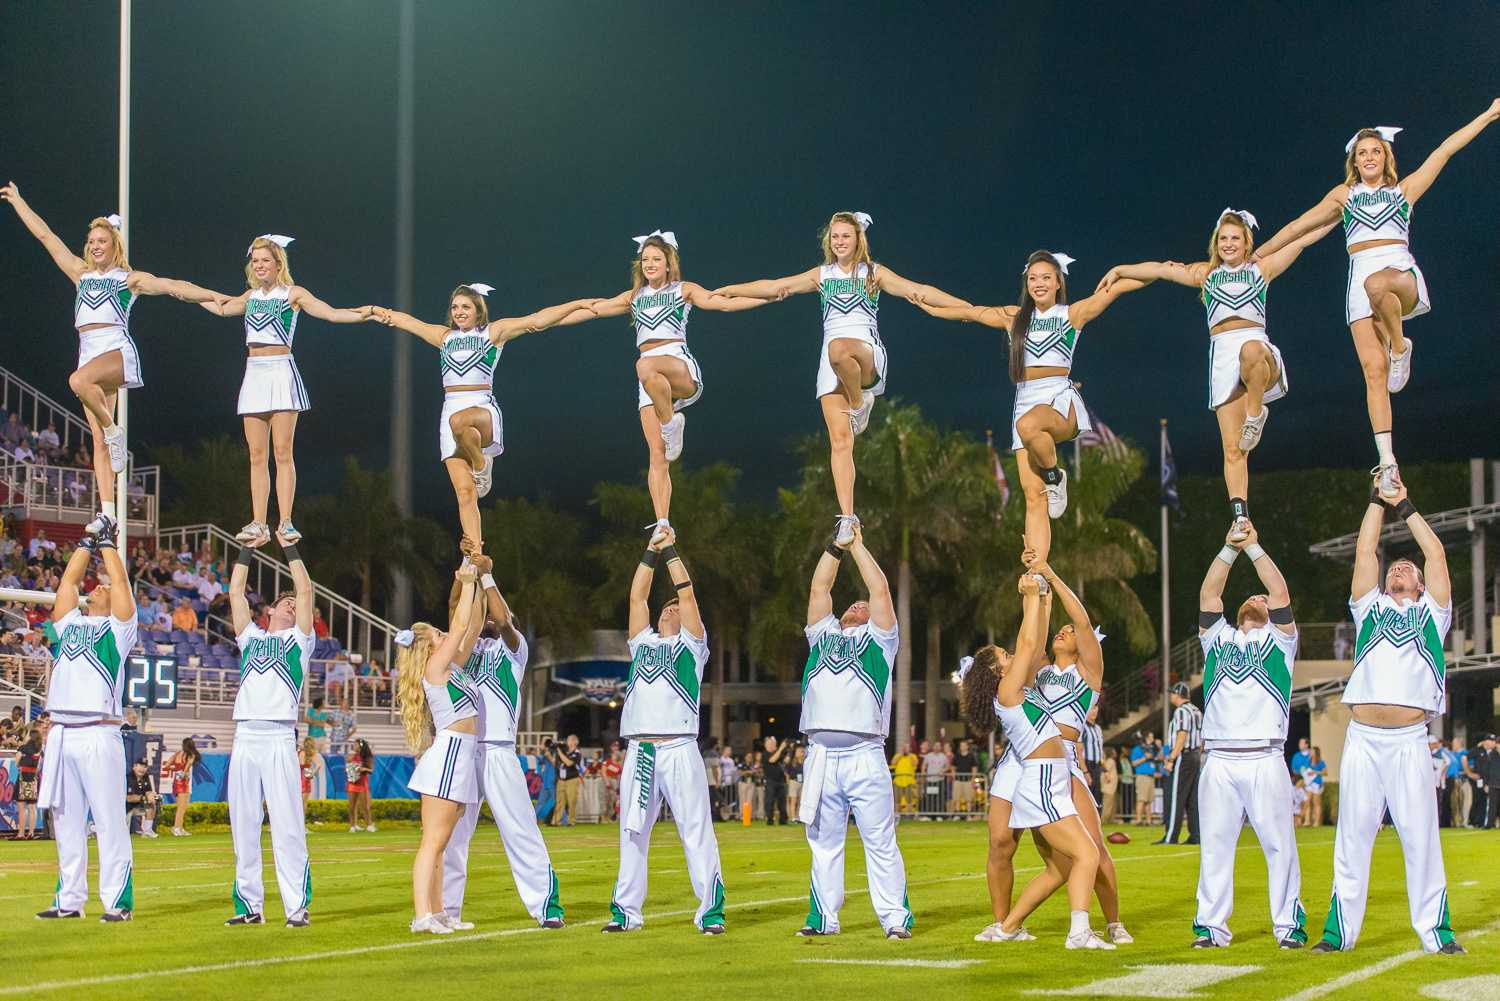 Marshall cheerleaders perform during a pause in play.